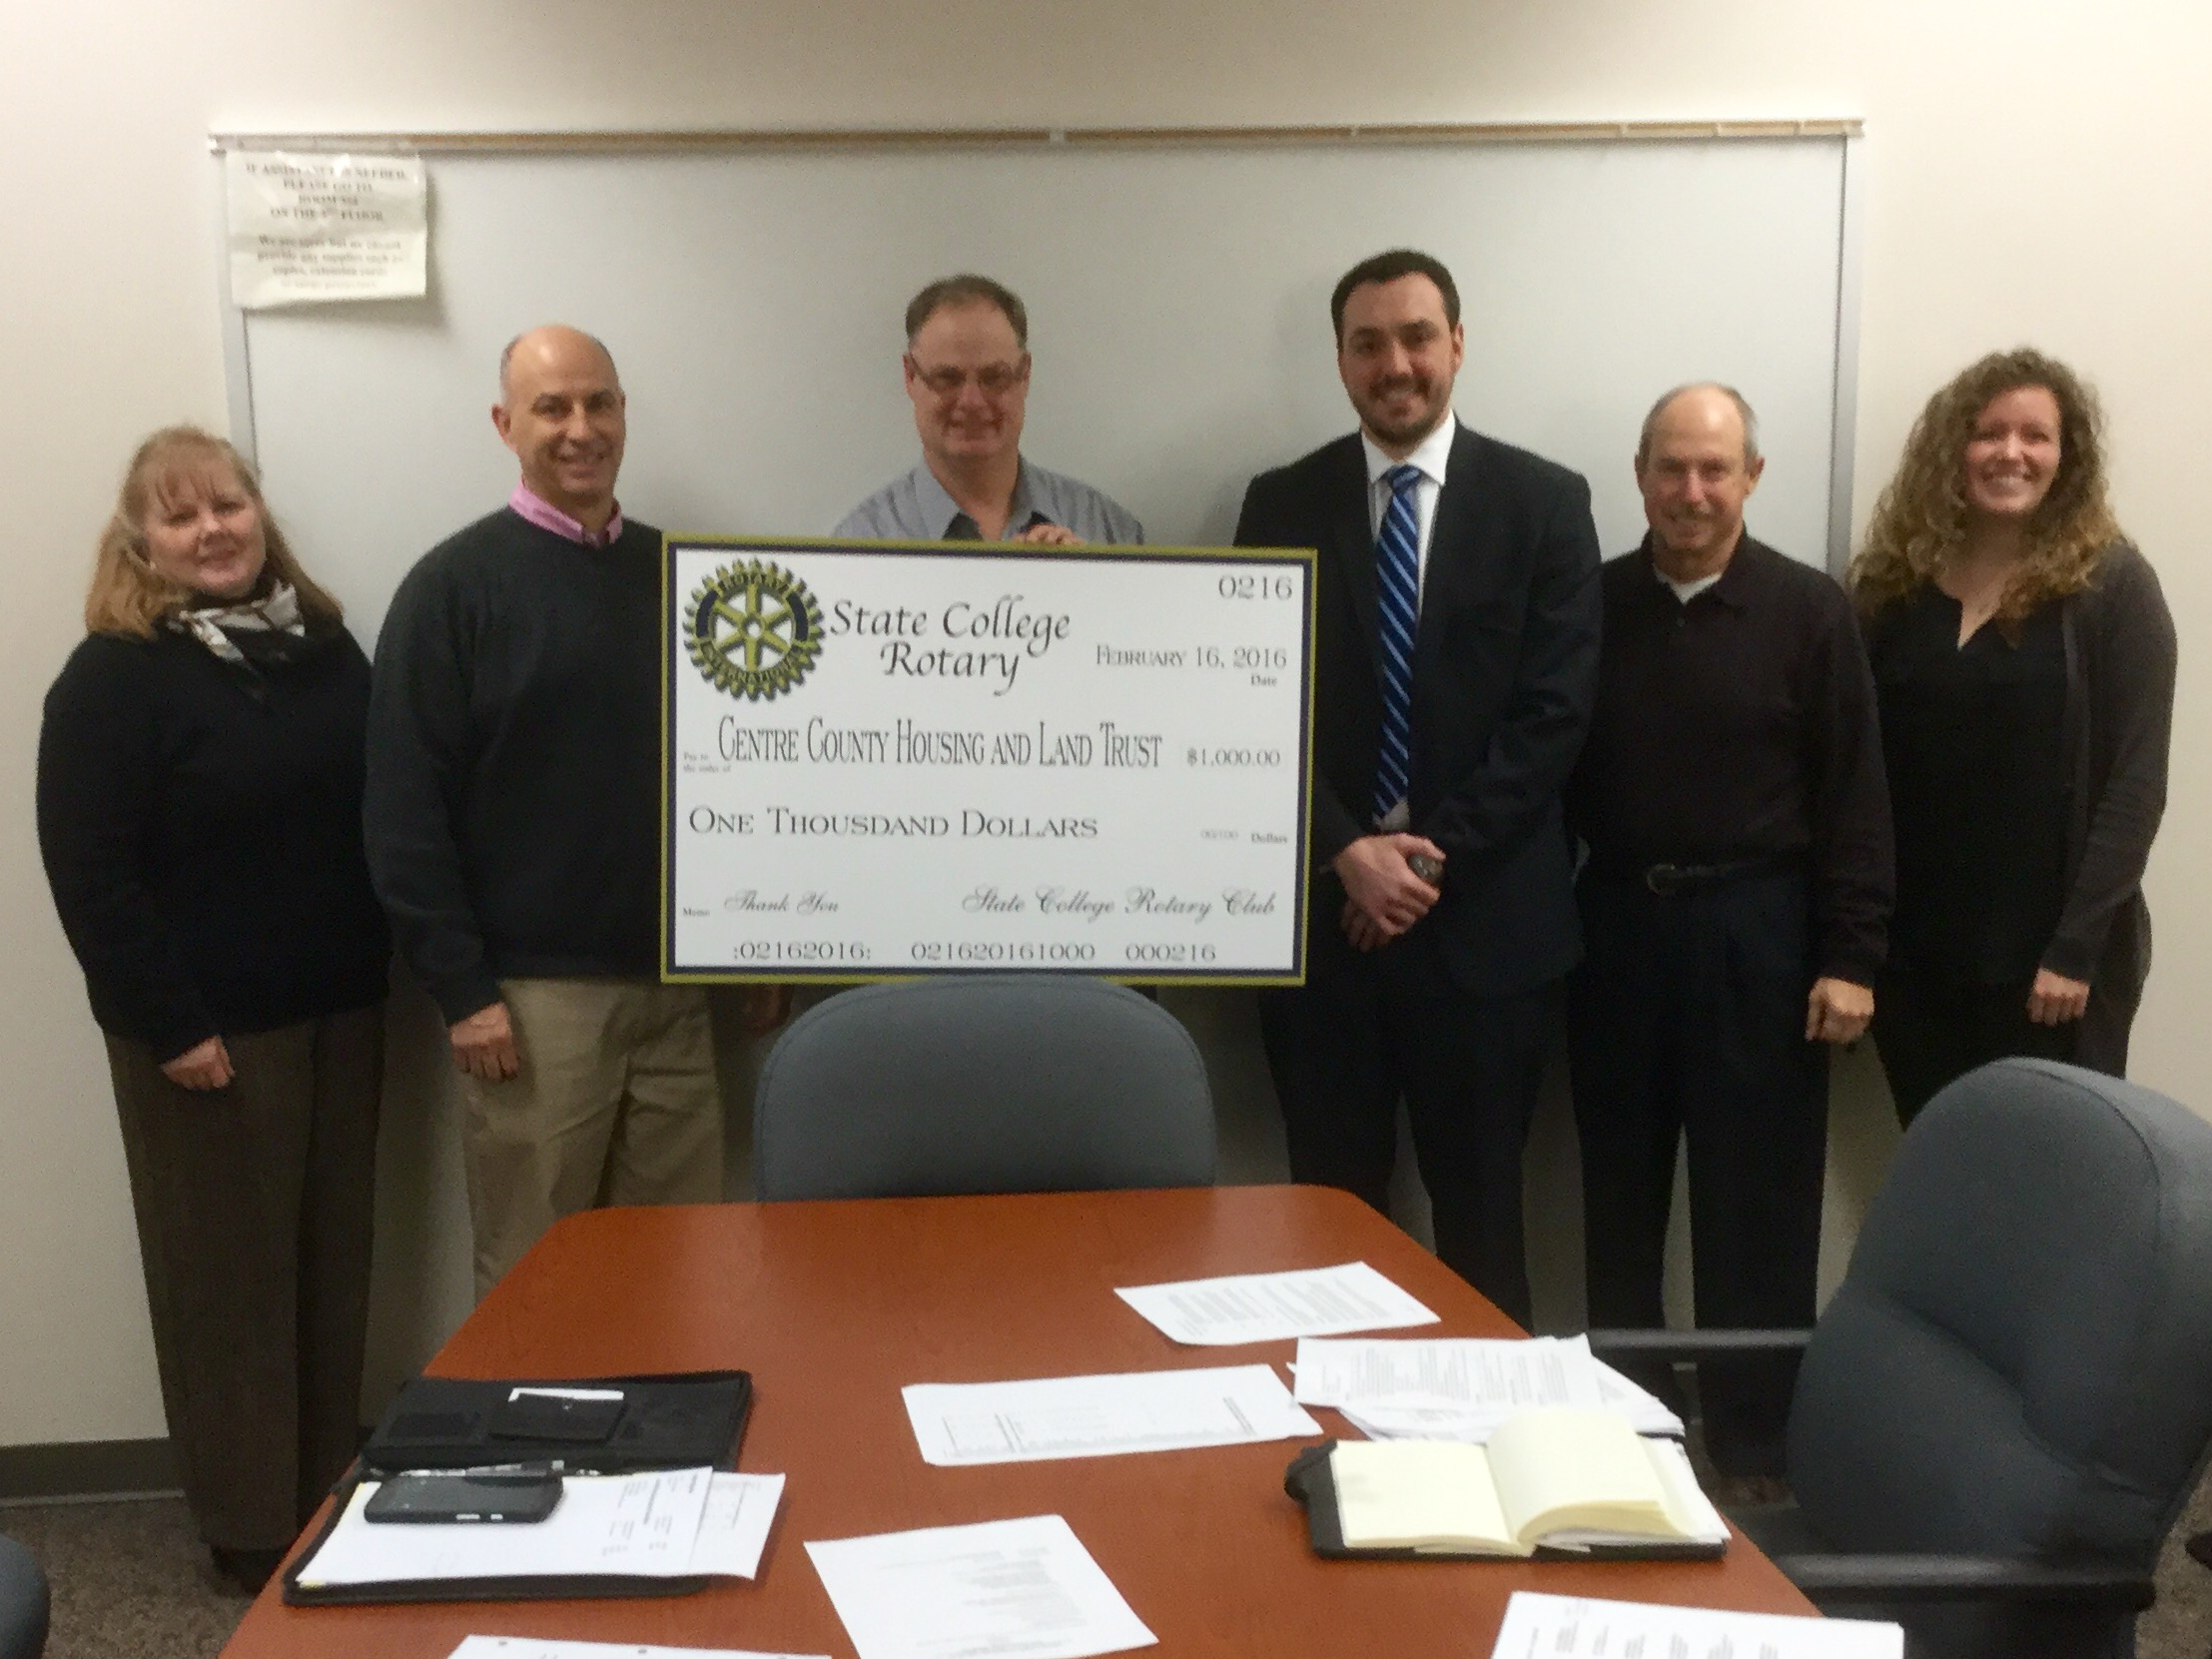 Thank You to the State College Rotary for their donation to CCHLT